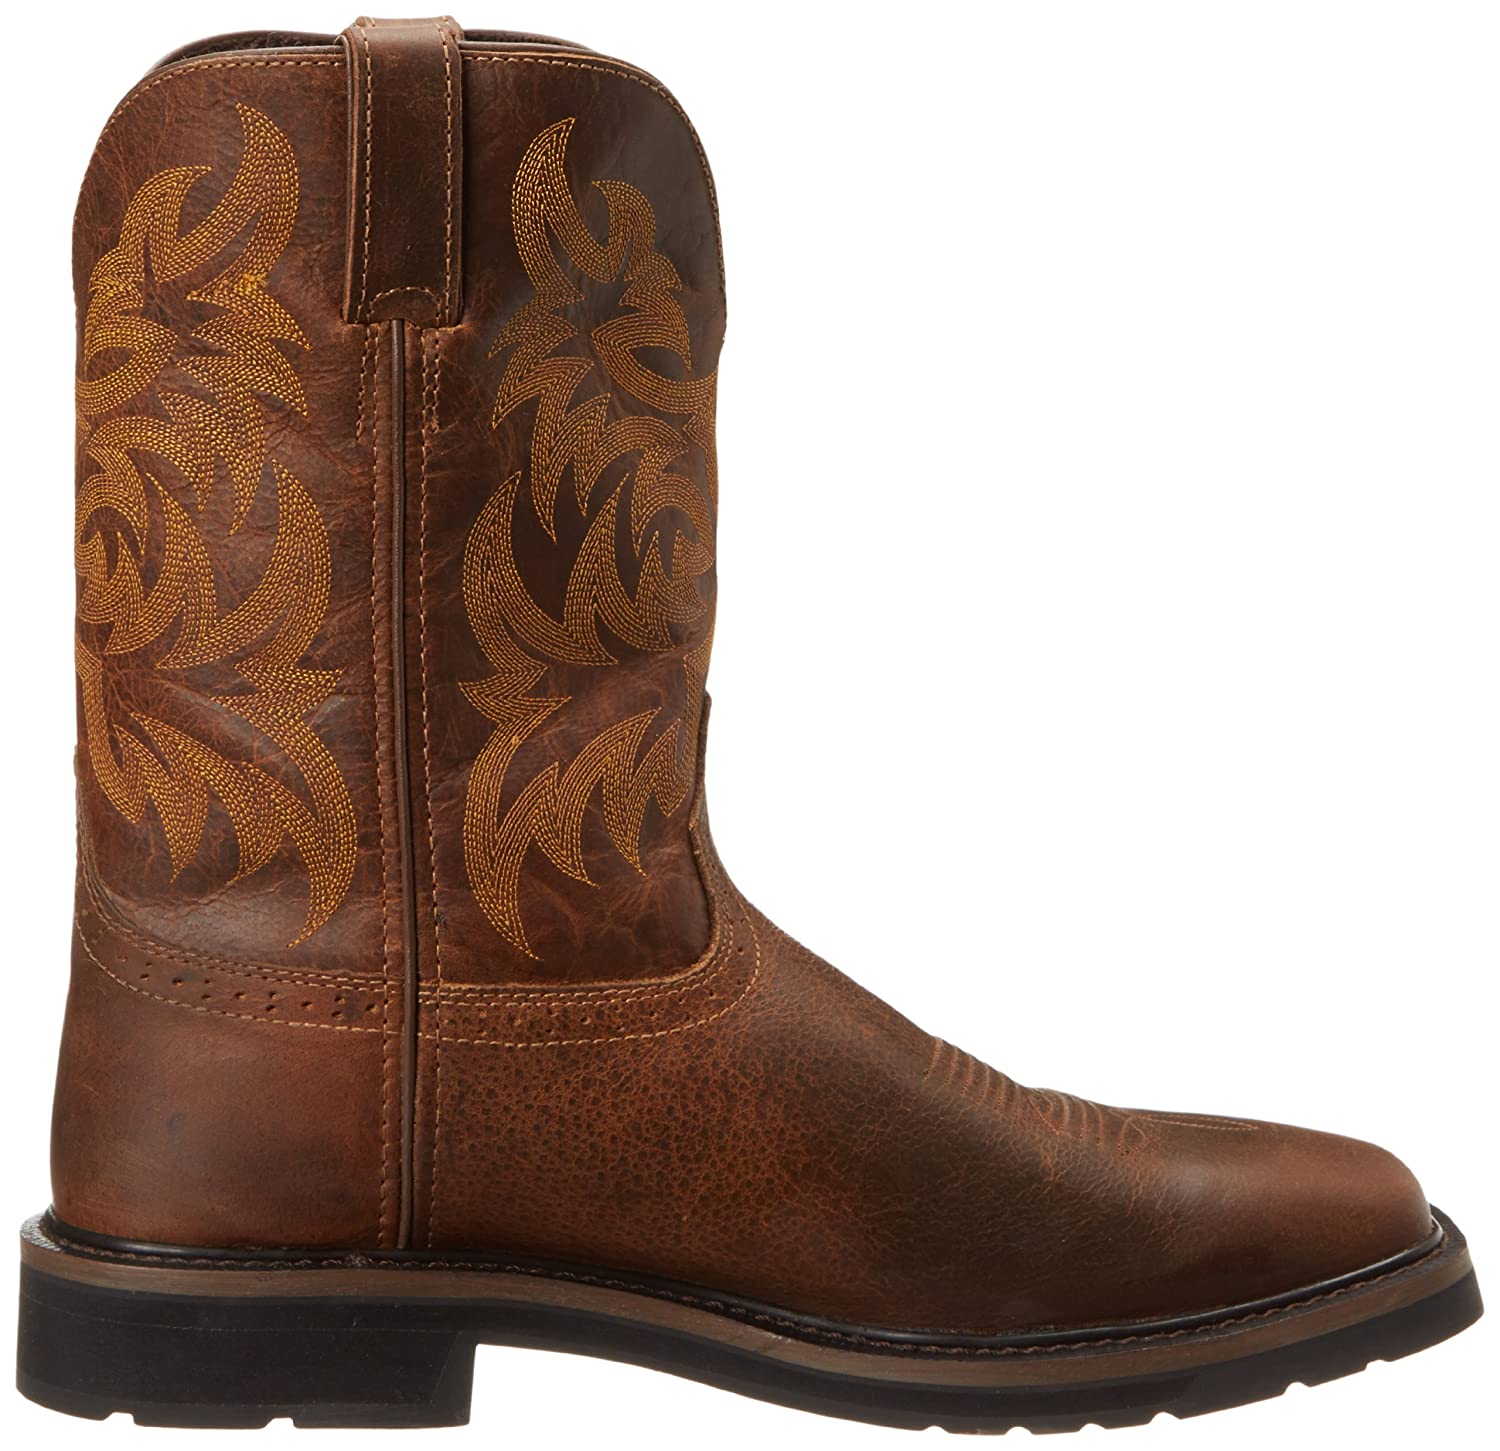 8e121f60aa1 Justin Original Work Boots Men's Stampede Pull-On Square Toe Work Boot